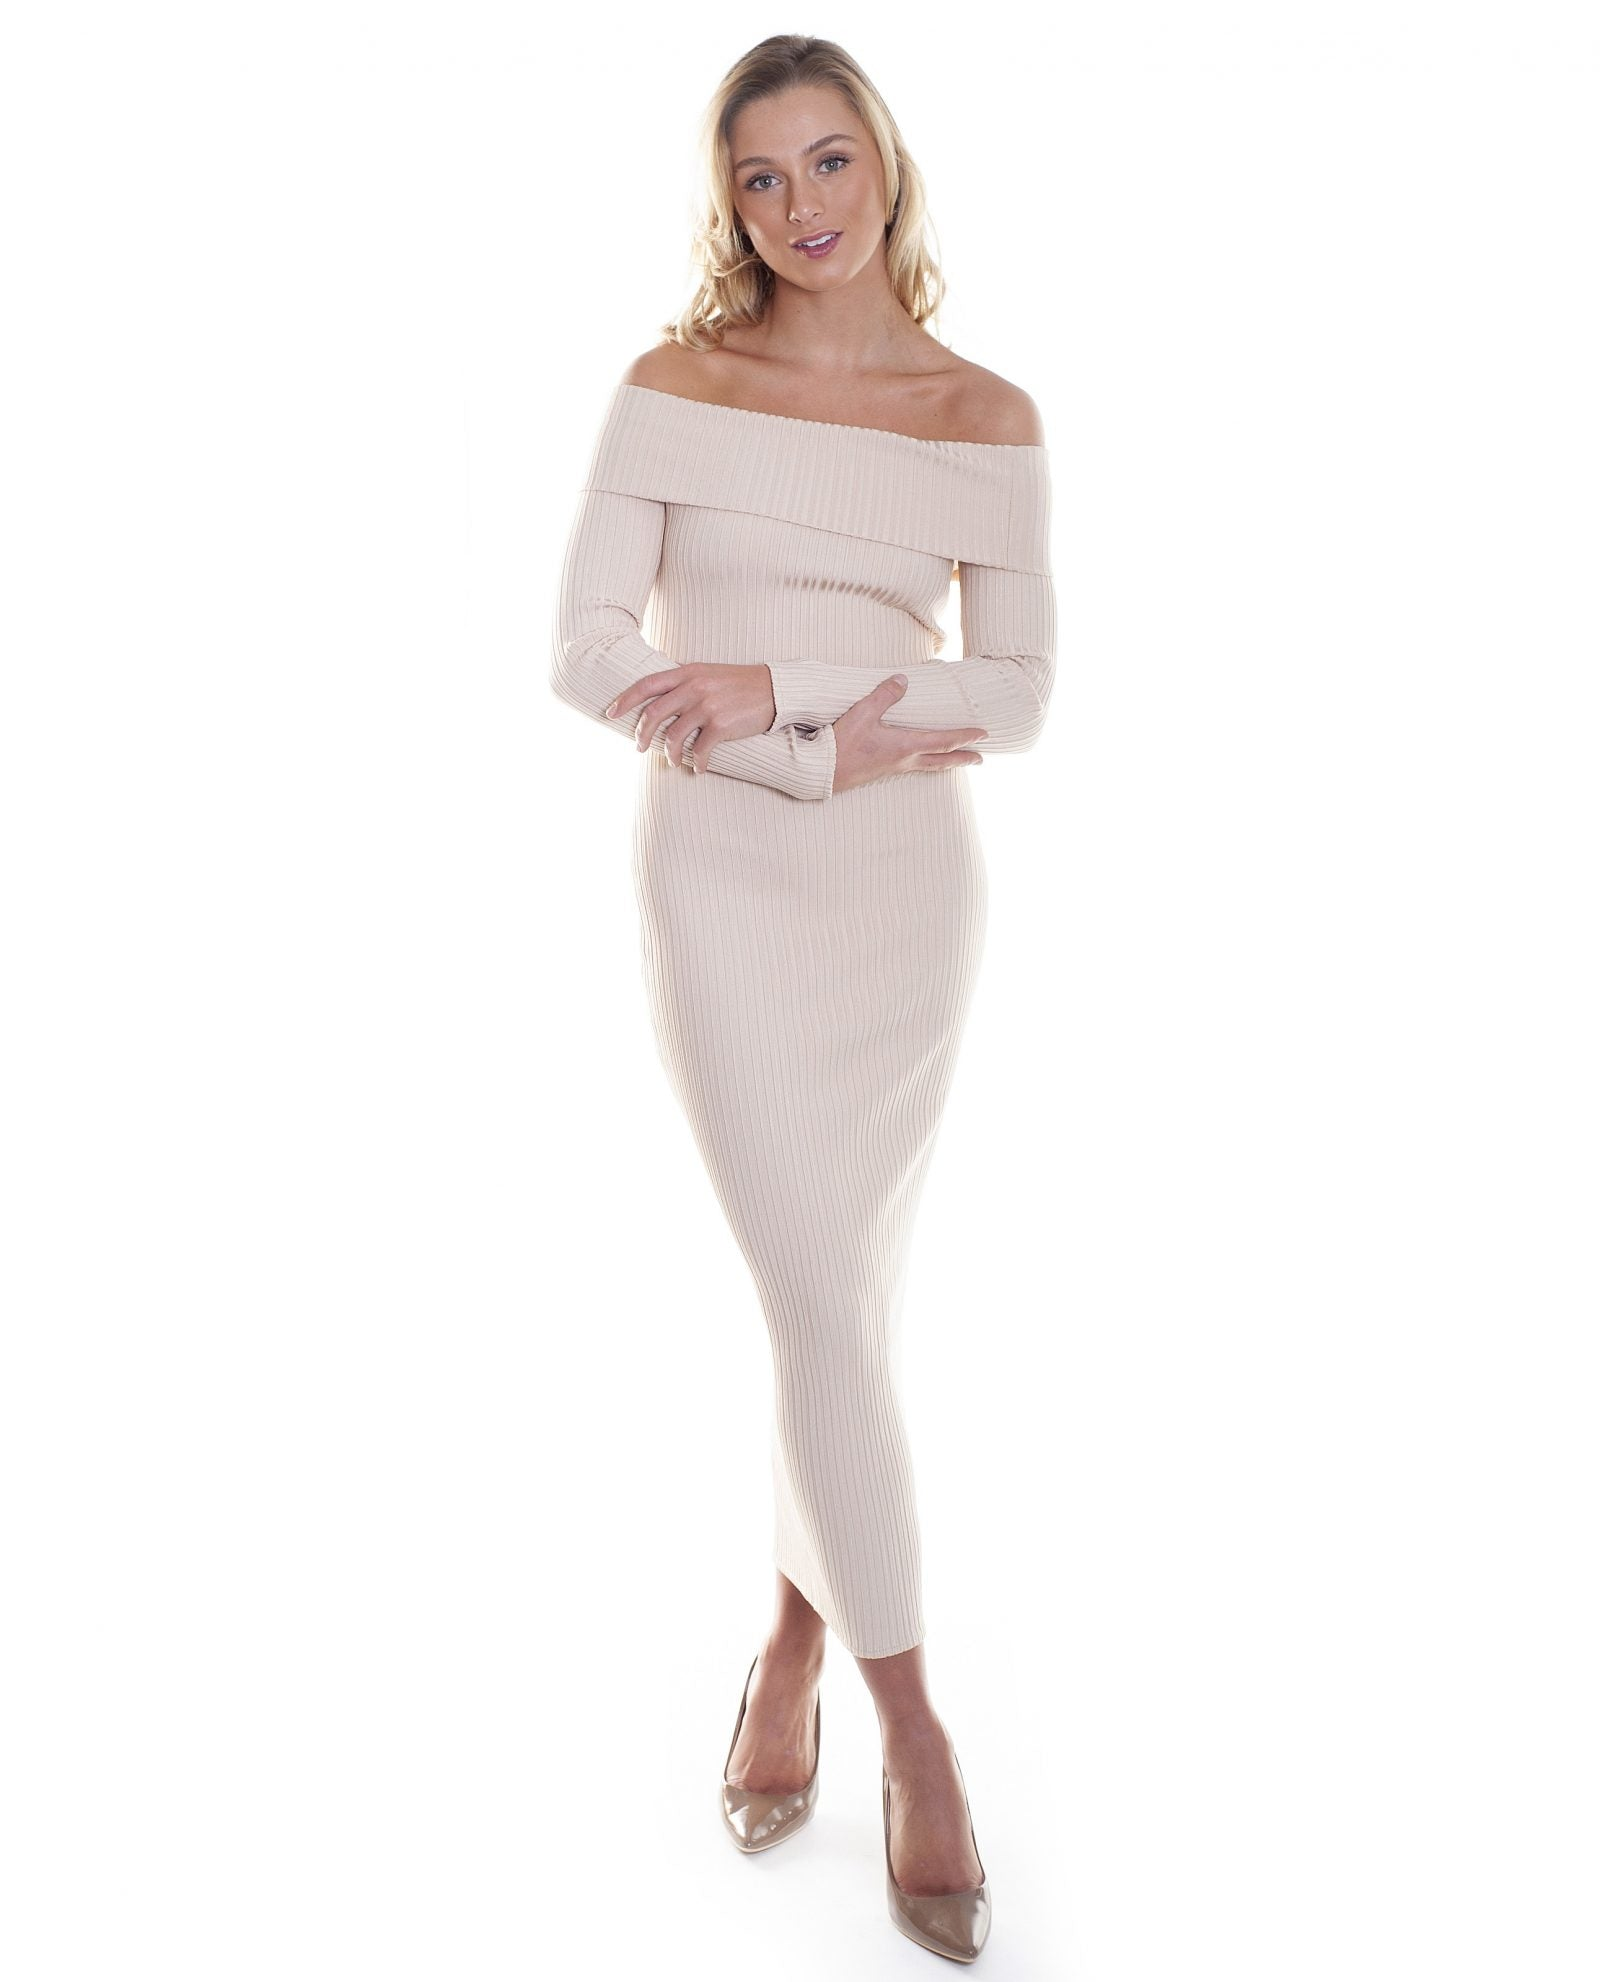 HIRE OFF THE SHOULDER NUDE BODYCON MAXI DRESS | Hirestreetuk.com